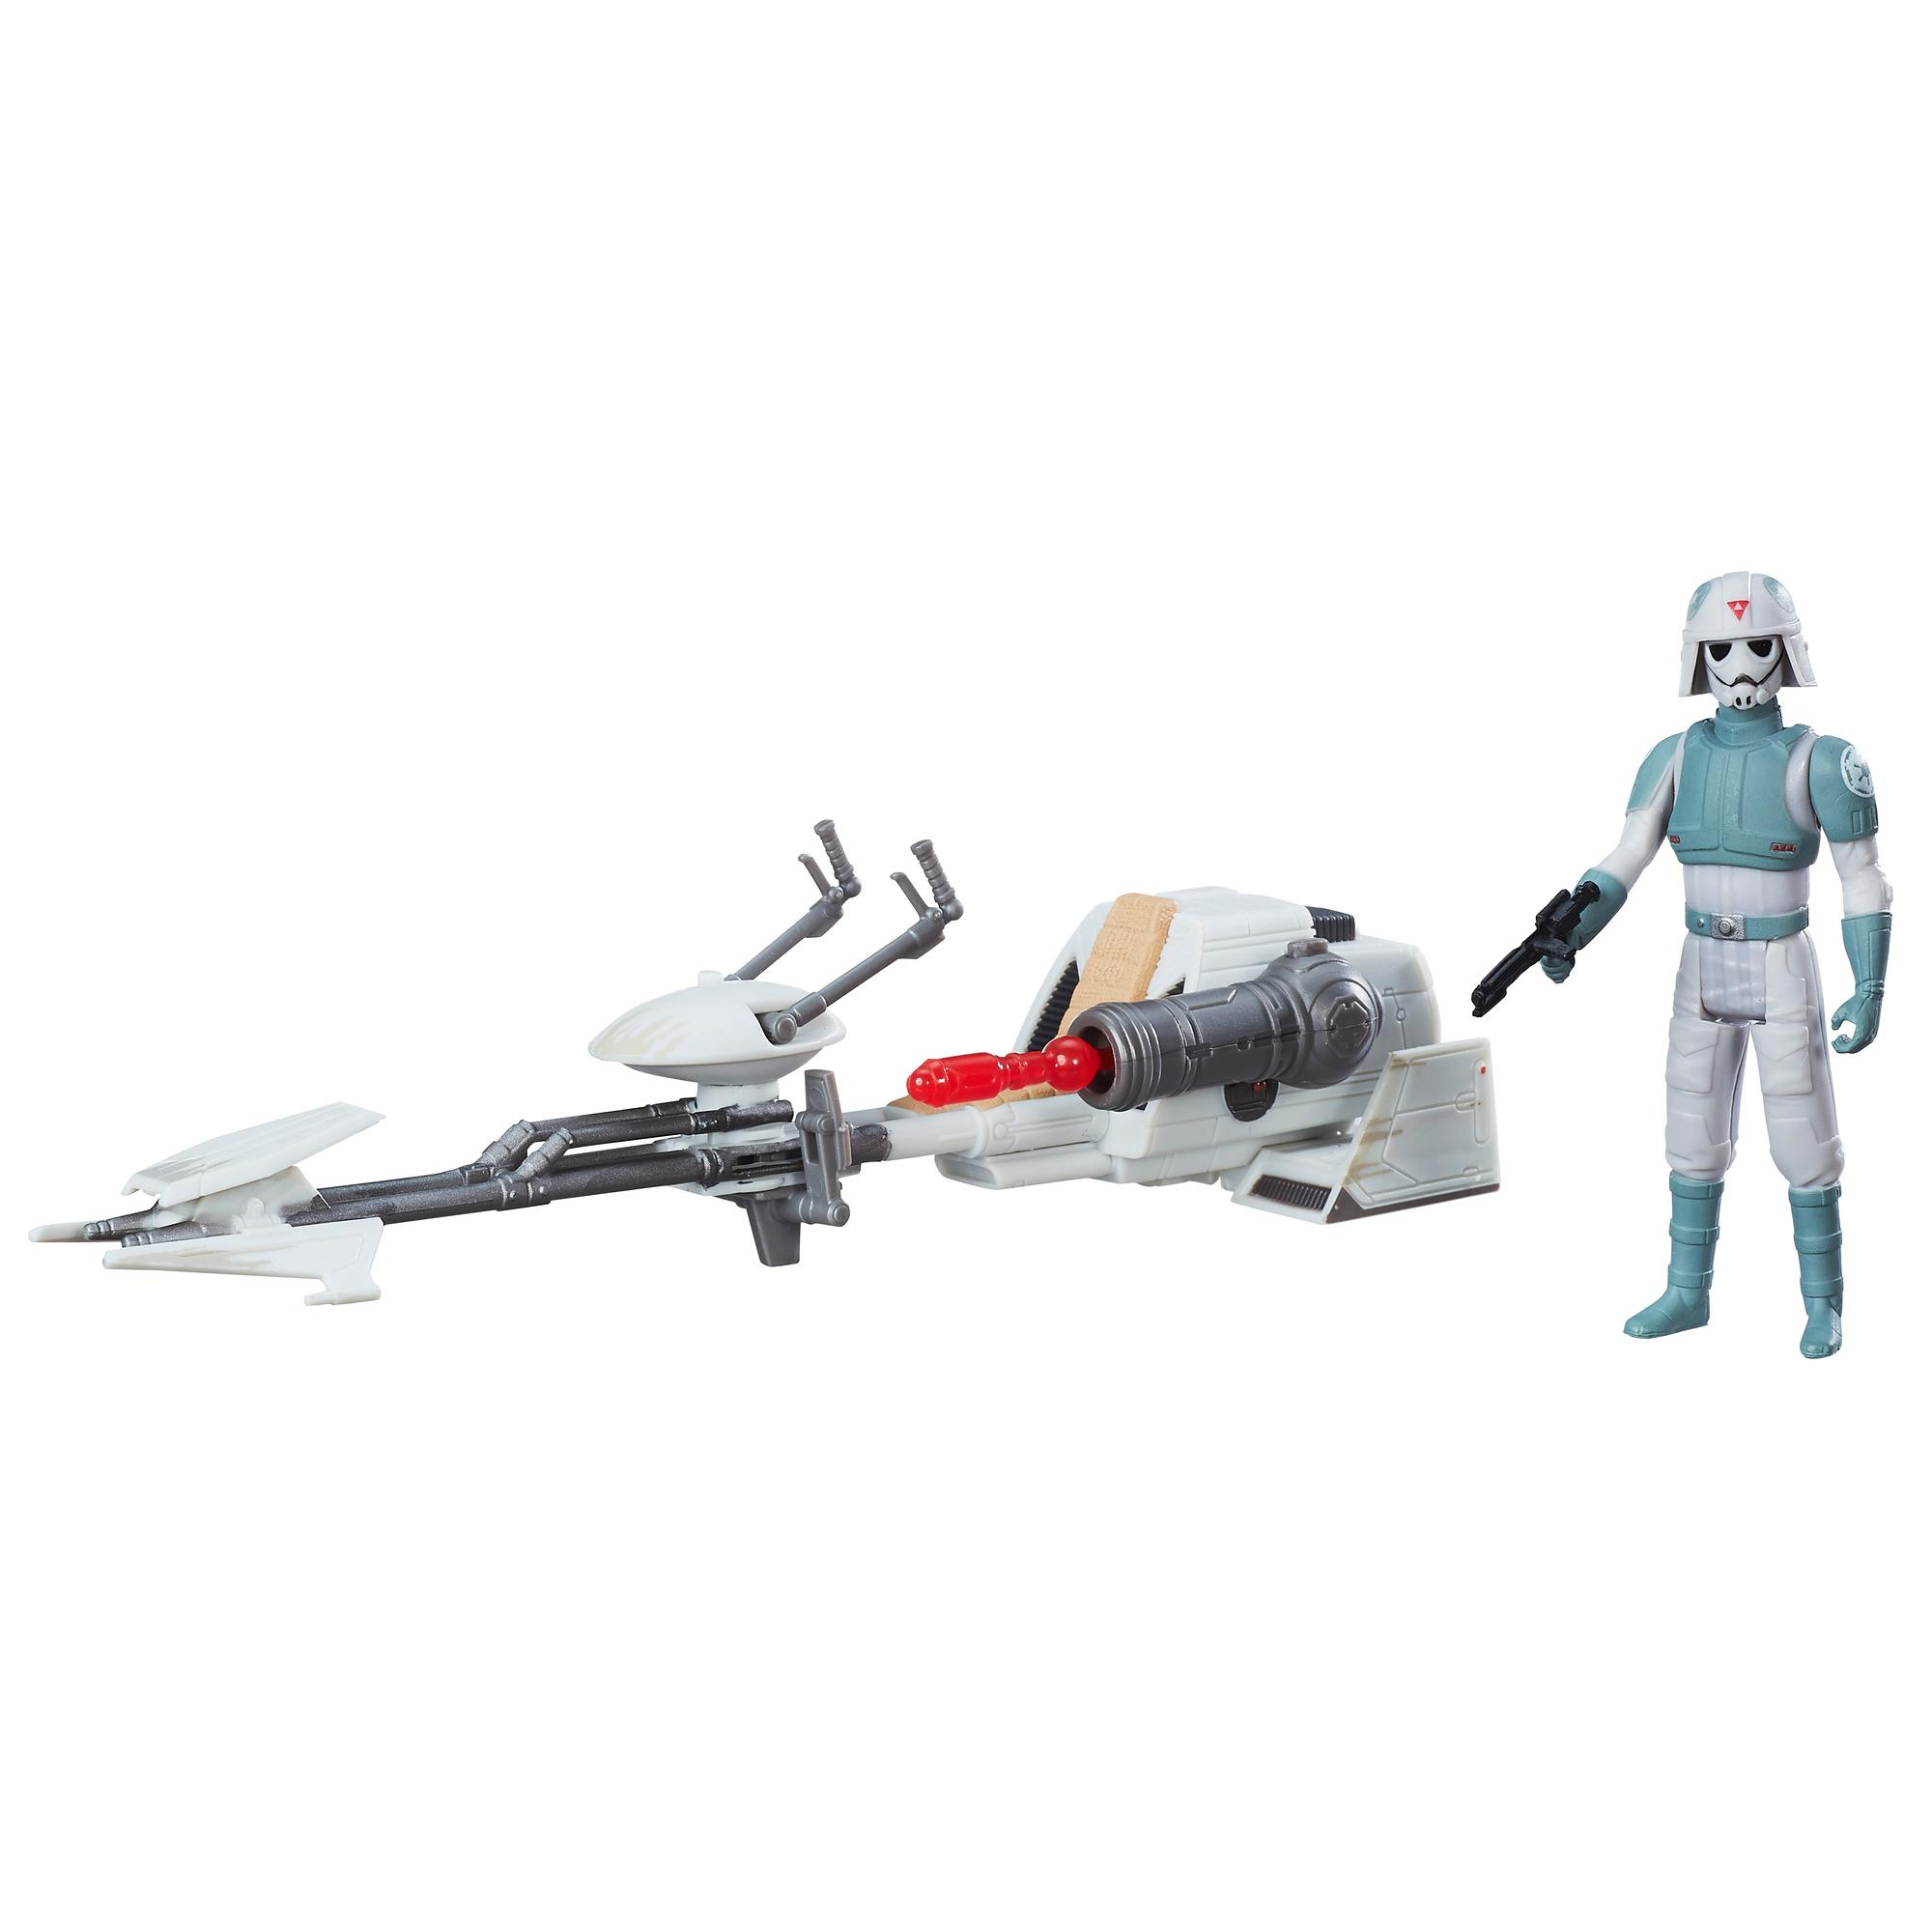 Star Wars Rebels AT-DP Pilot and Imperial Speeder